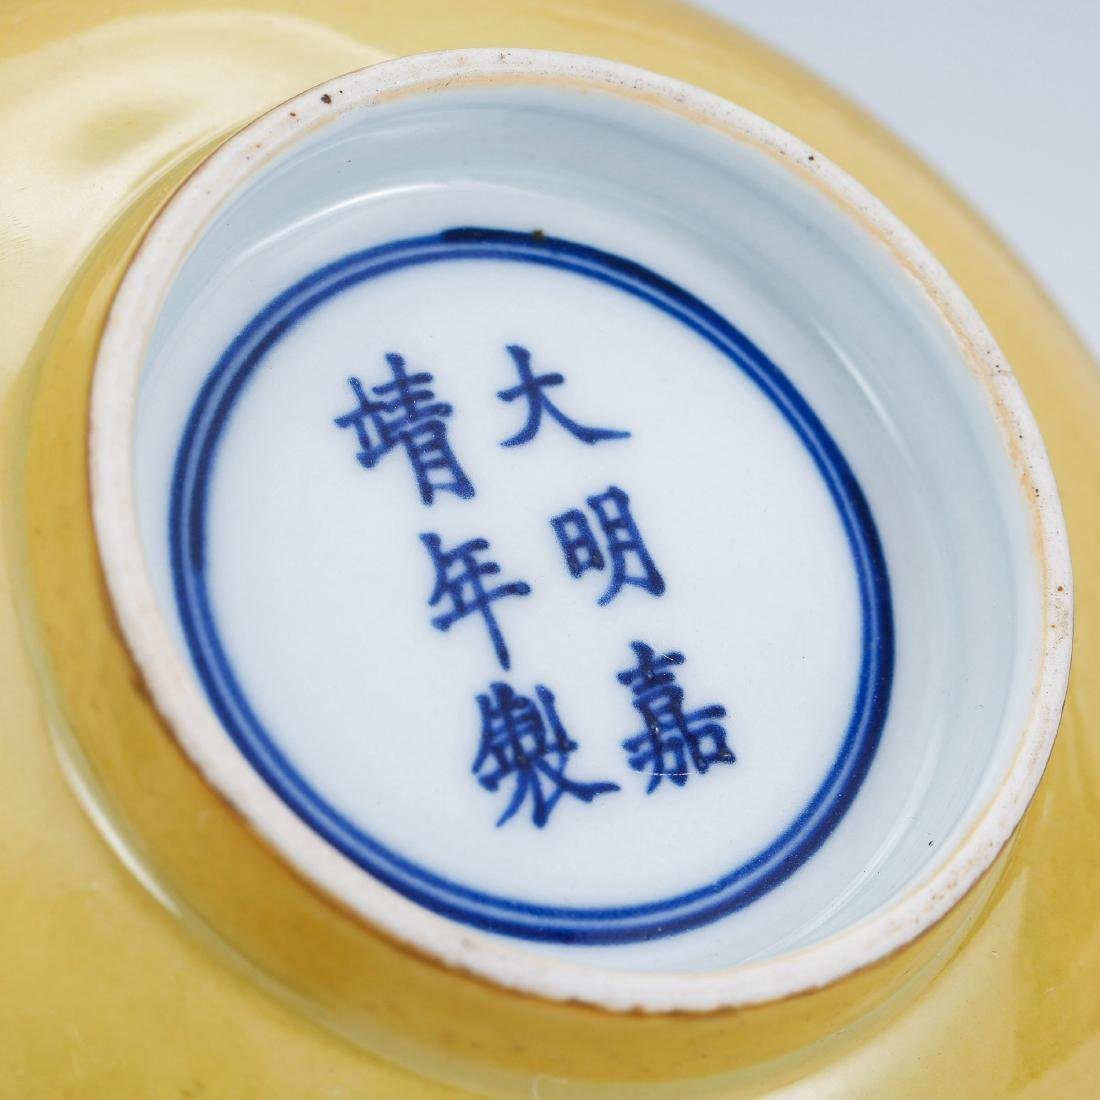 CHINESE YELLOW GLAZED BOWL, MING DYNASTY - 4